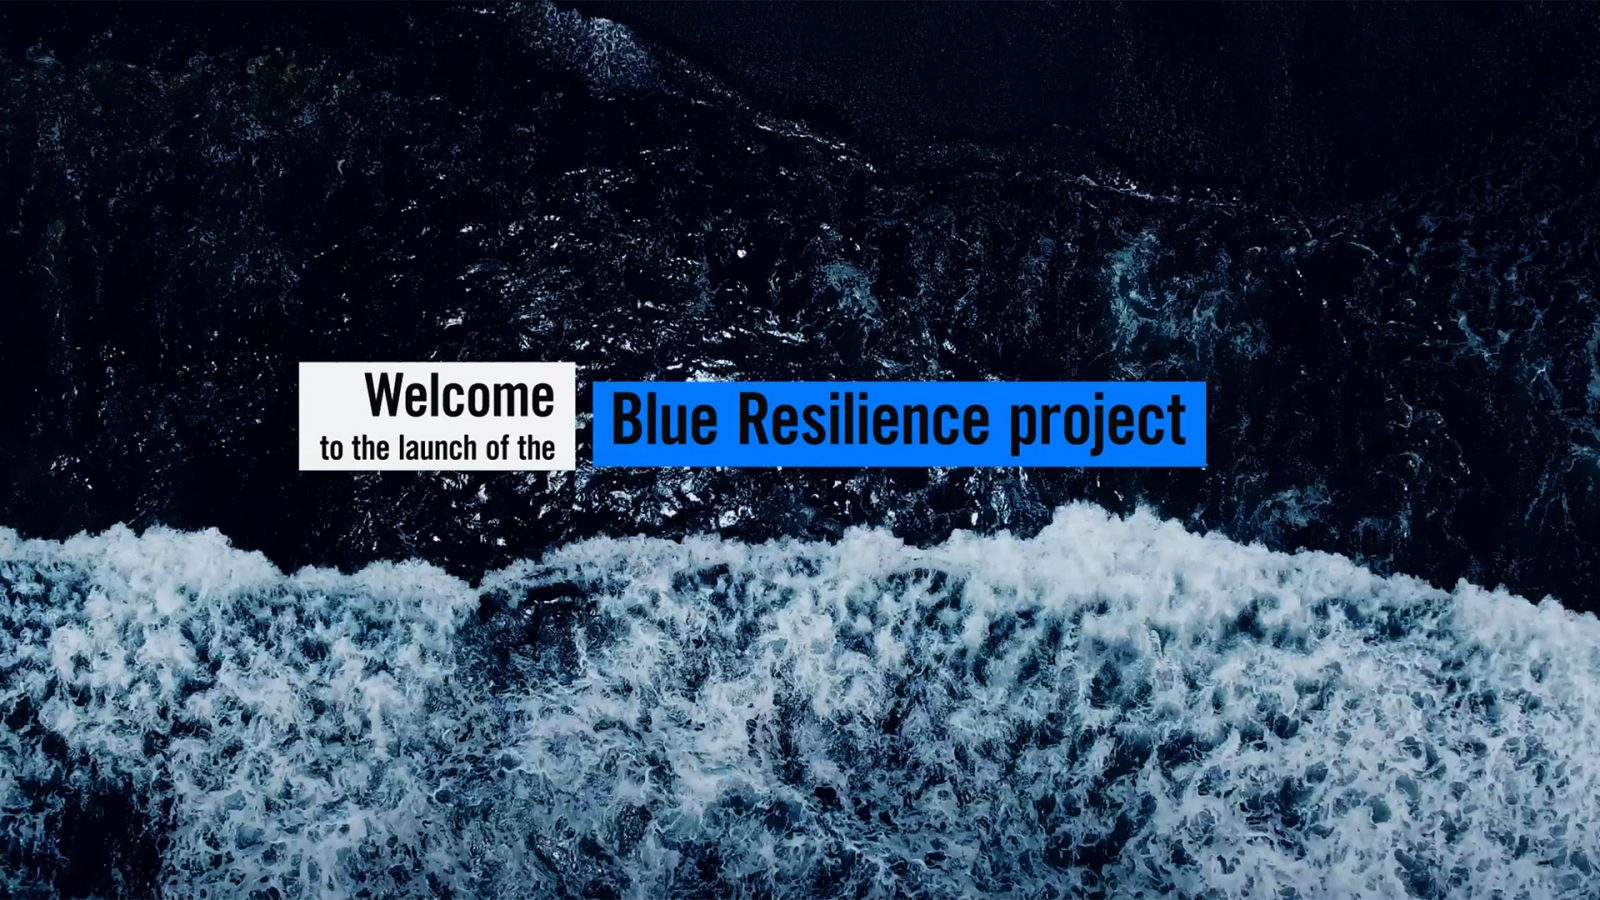 Blue Resilience Project launch